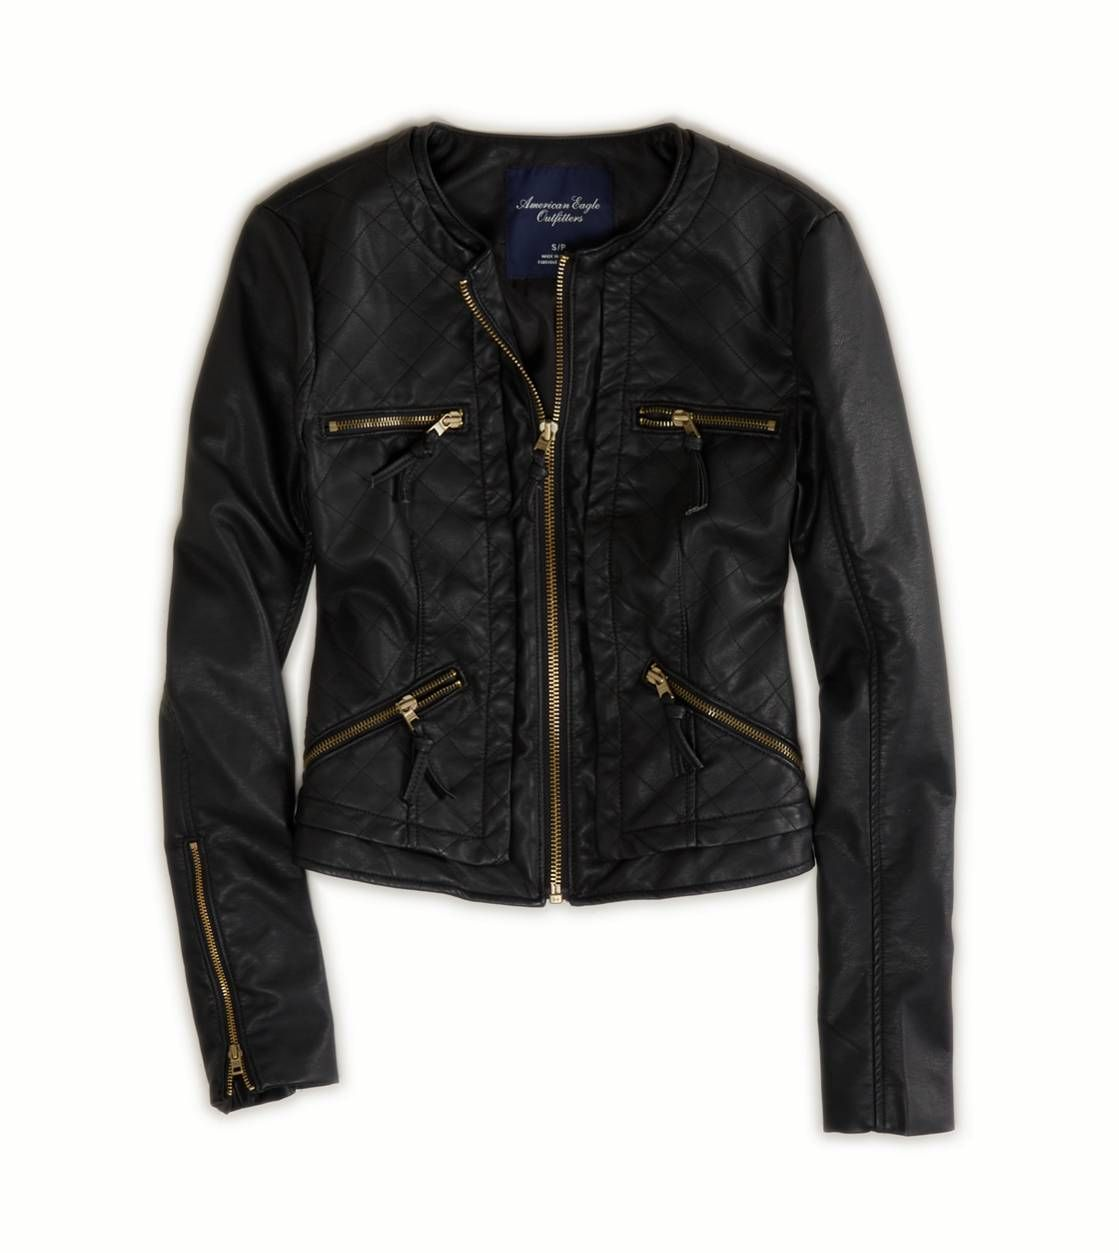 Search Results American Eagle Outfitters Vegan Leather Jacket Leather Jacket Clothes [ 1253 x 1119 Pixel ]